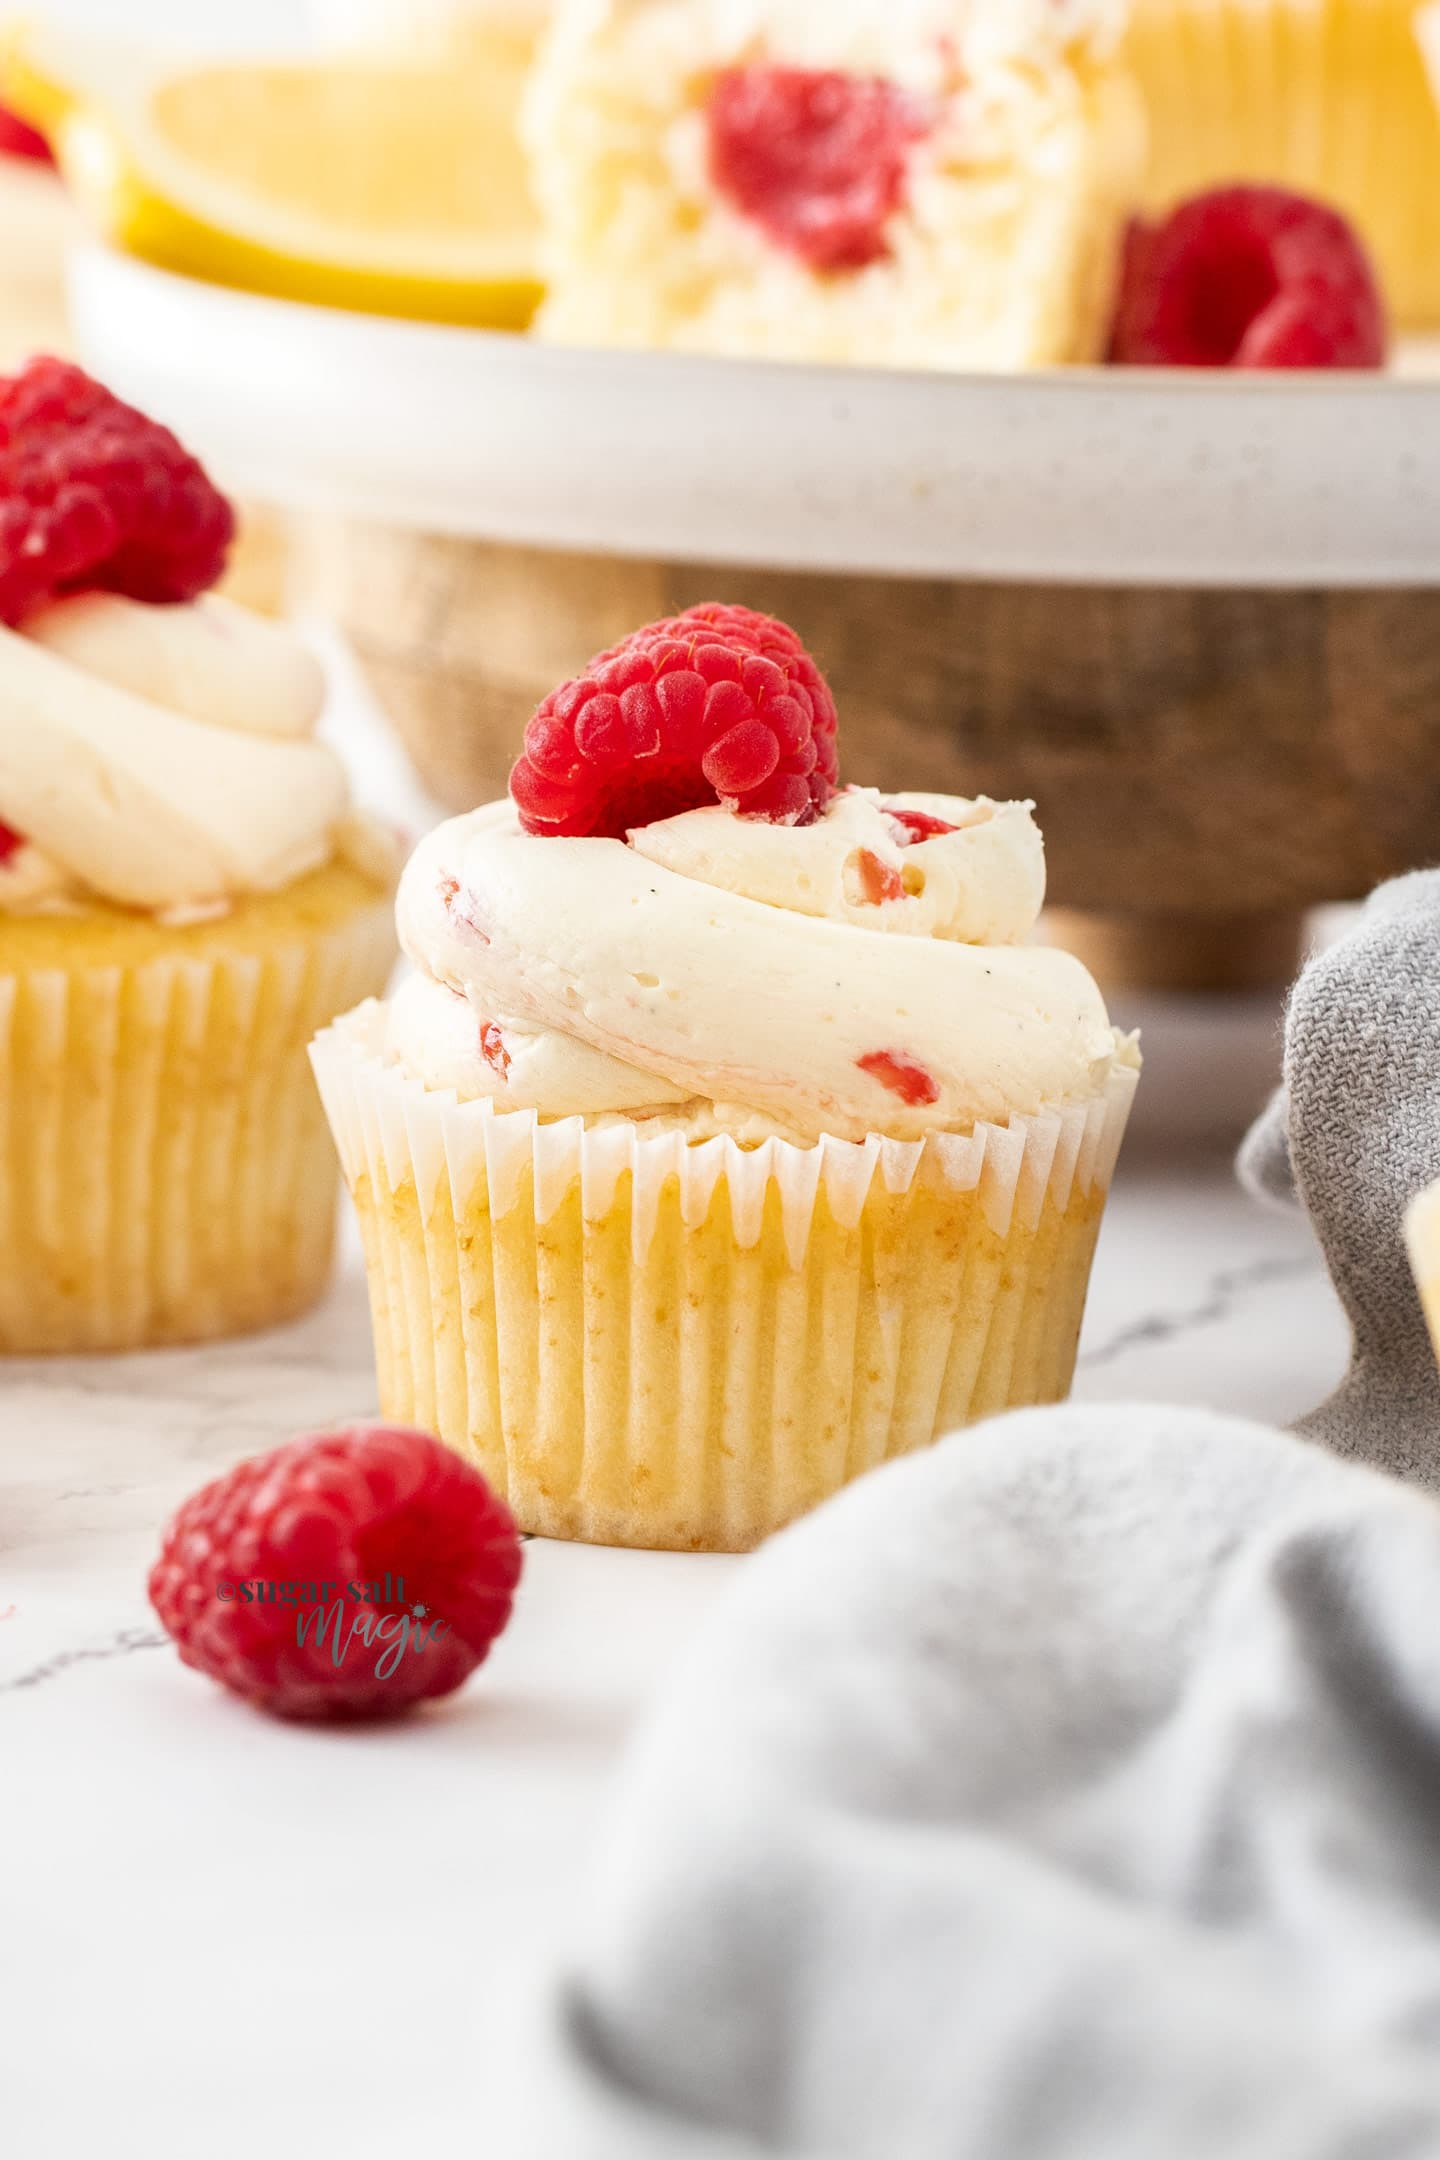 Closeup of a cupcake with a raspberry on top.